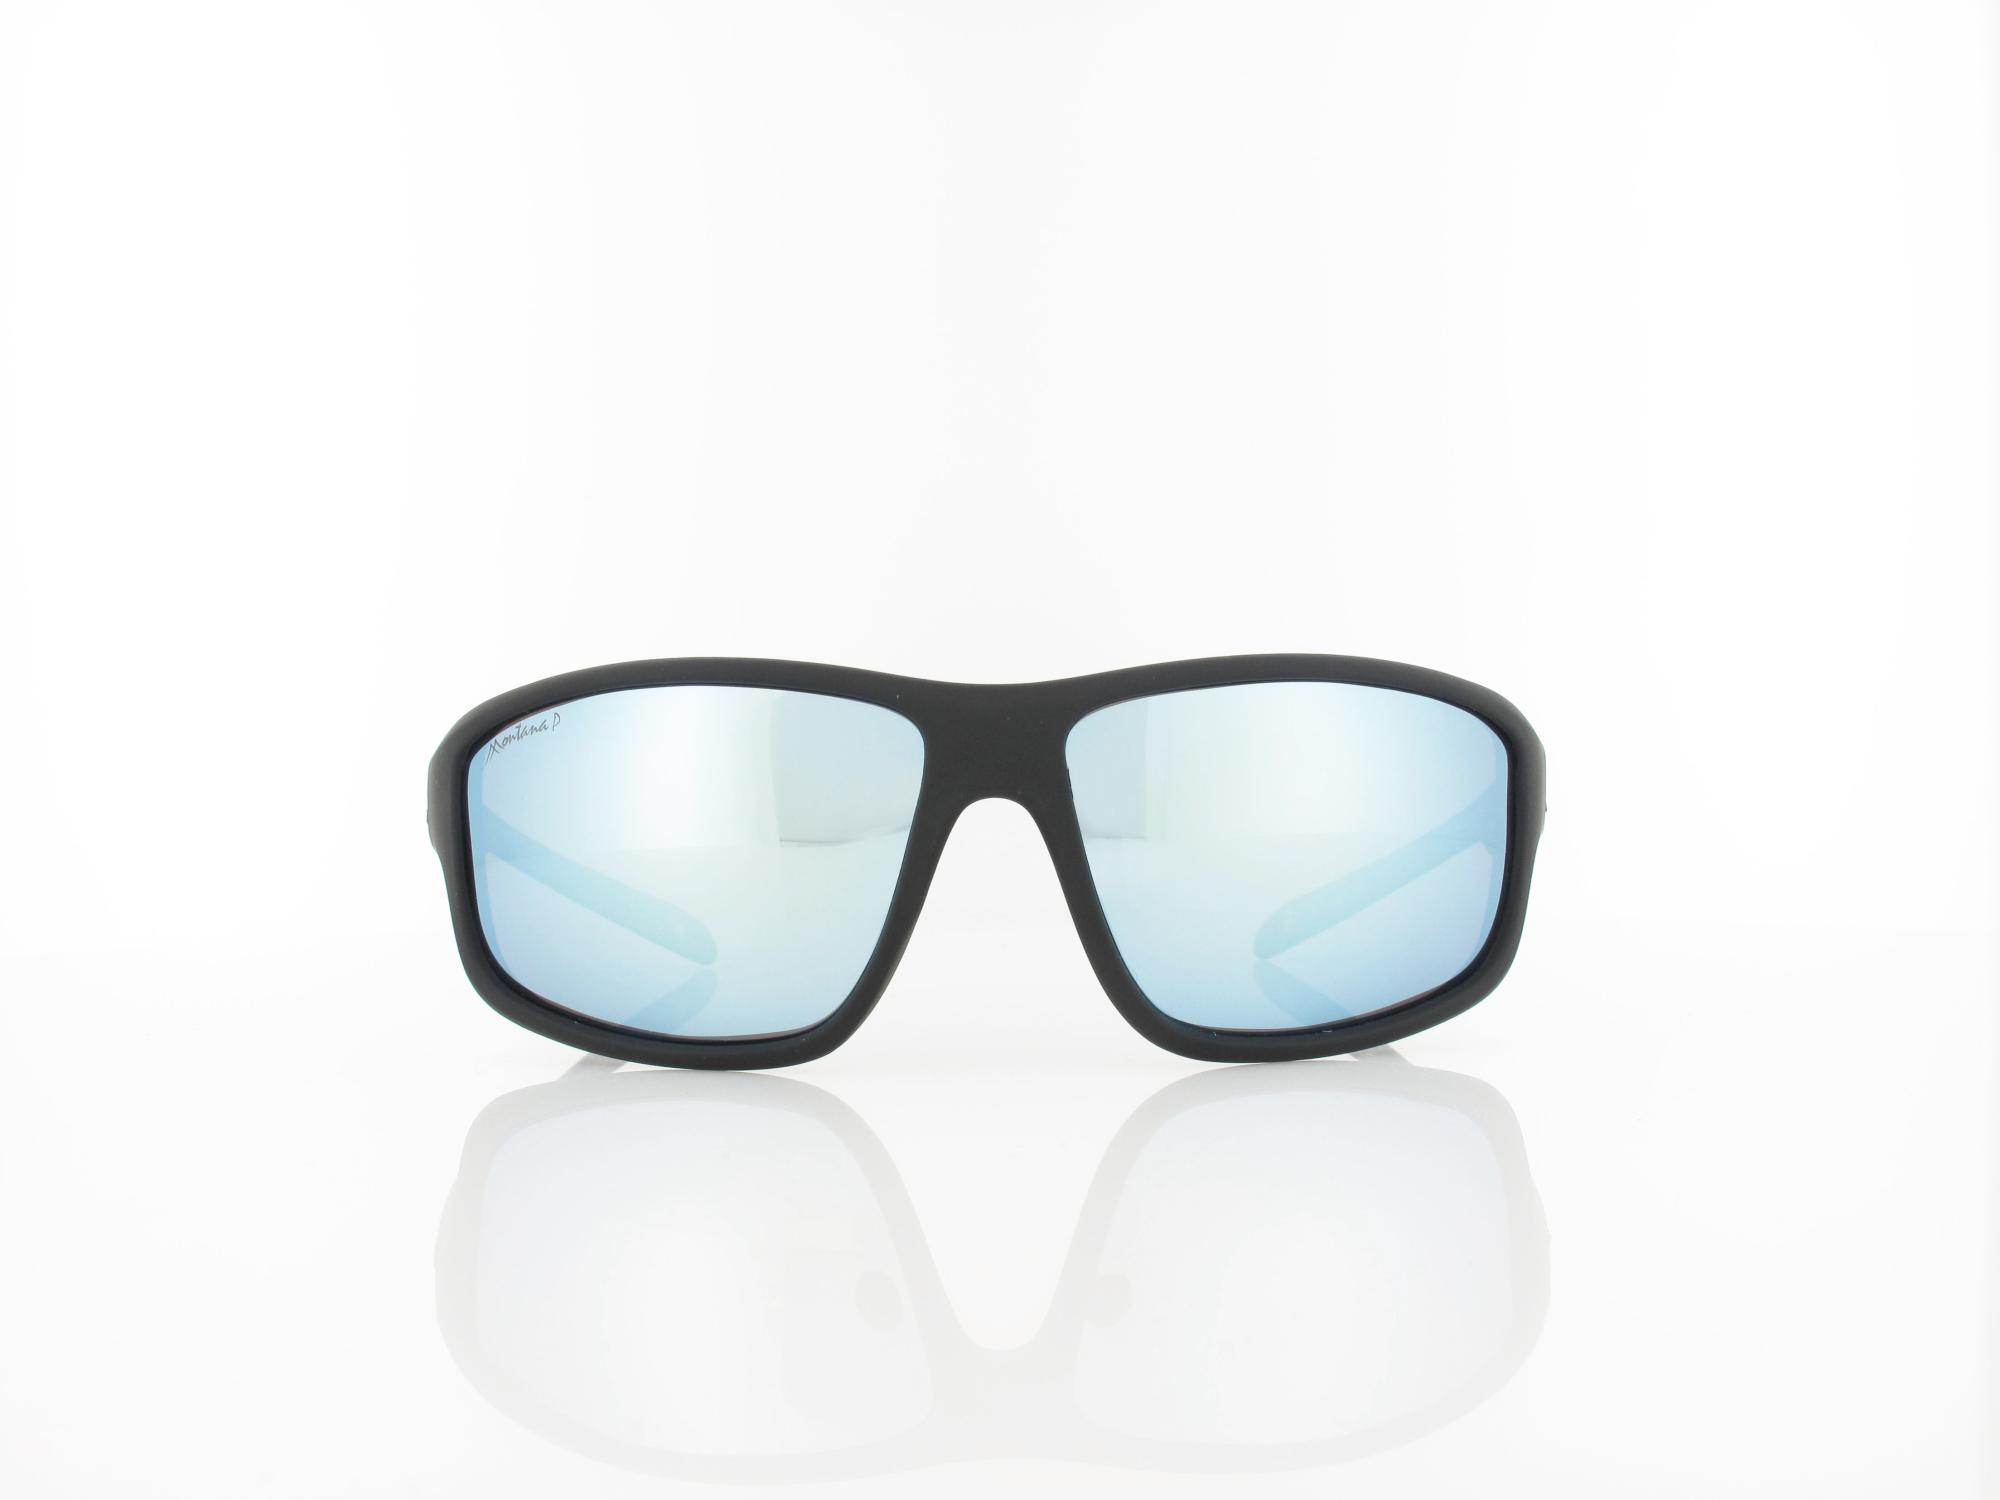 Brilando | SP313 B 63 | matte black / revo light blue silver